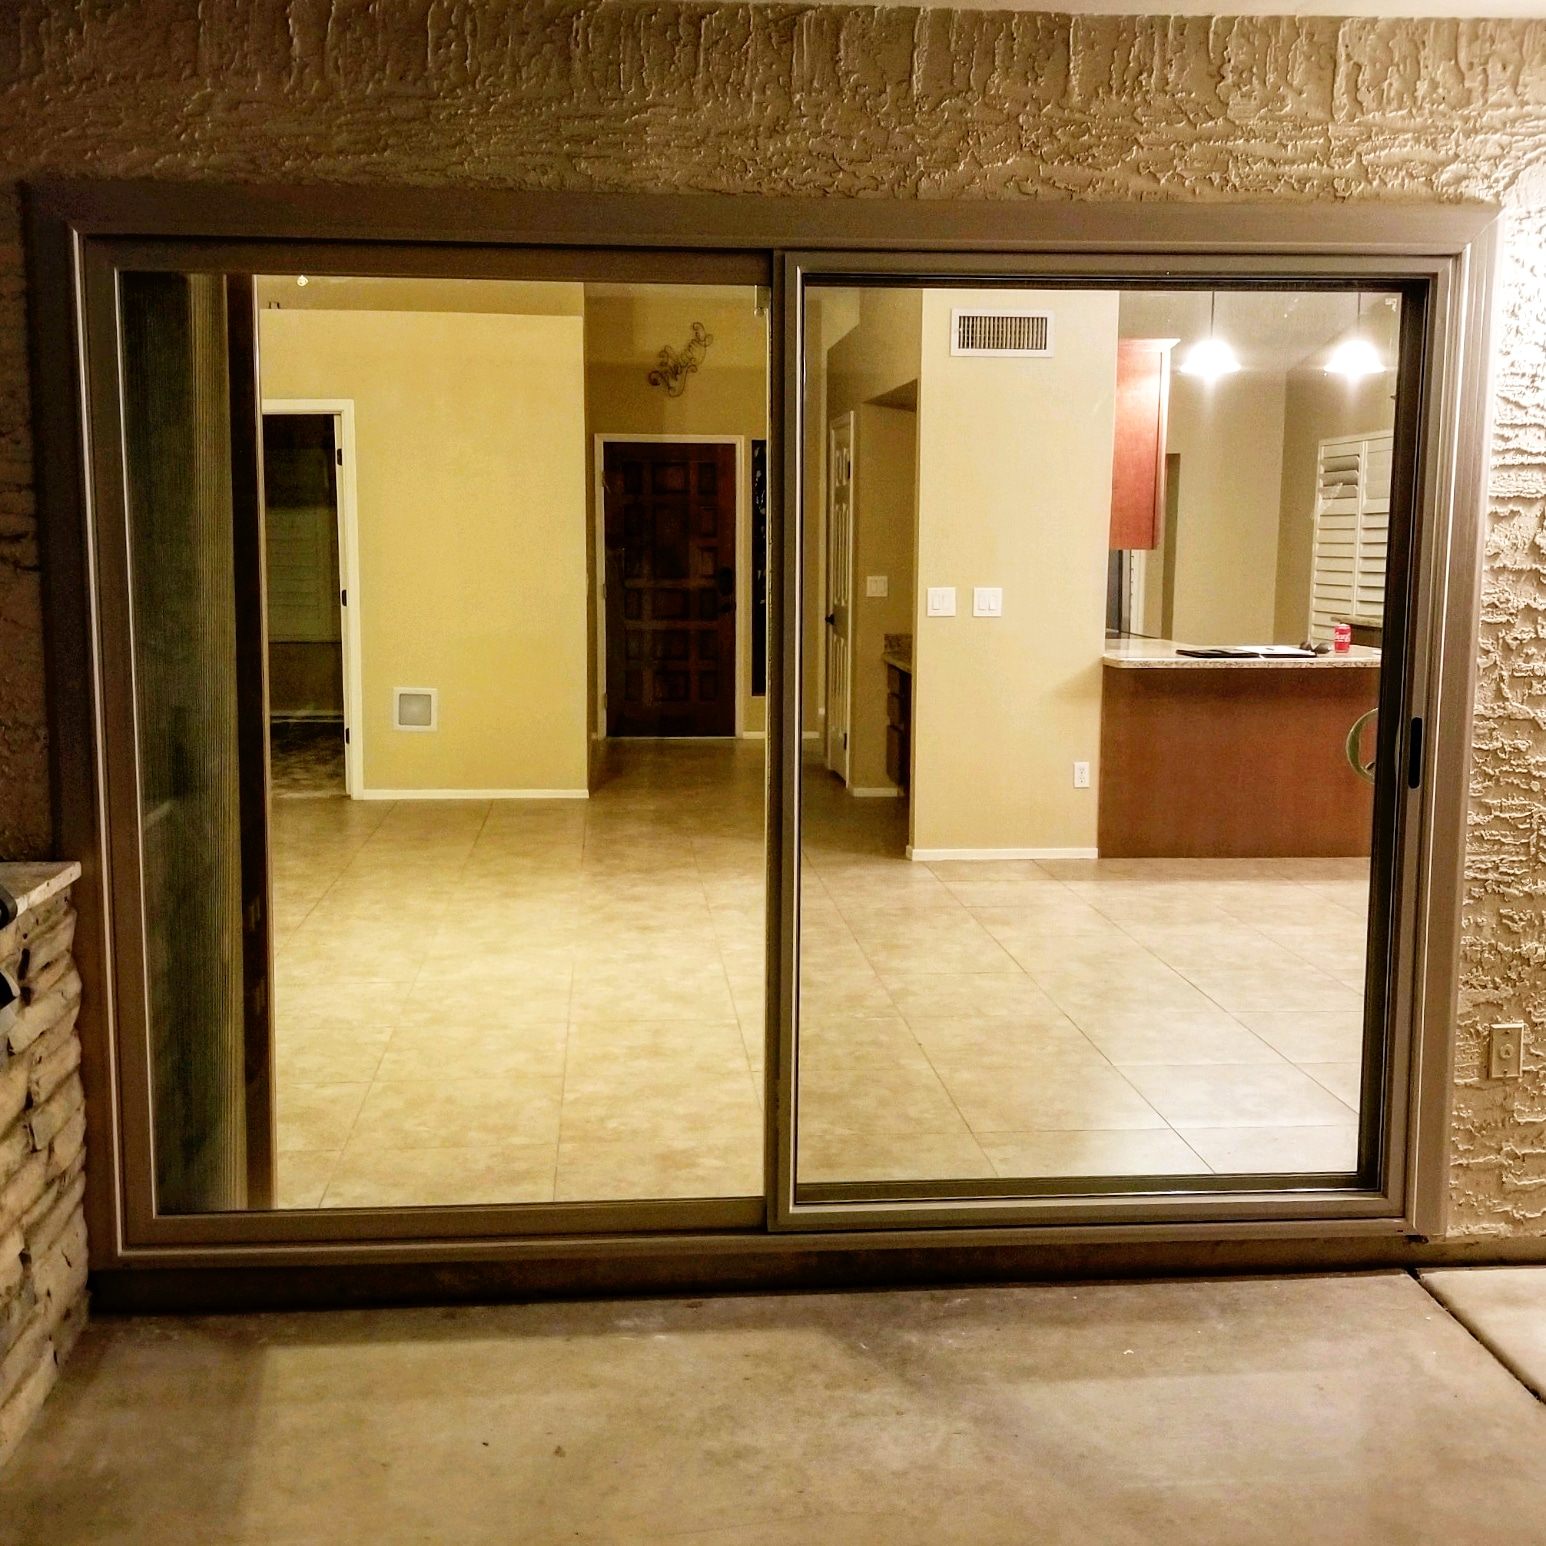 Arizona Window and Door in Scottsdale and Tucson showing back sliding door